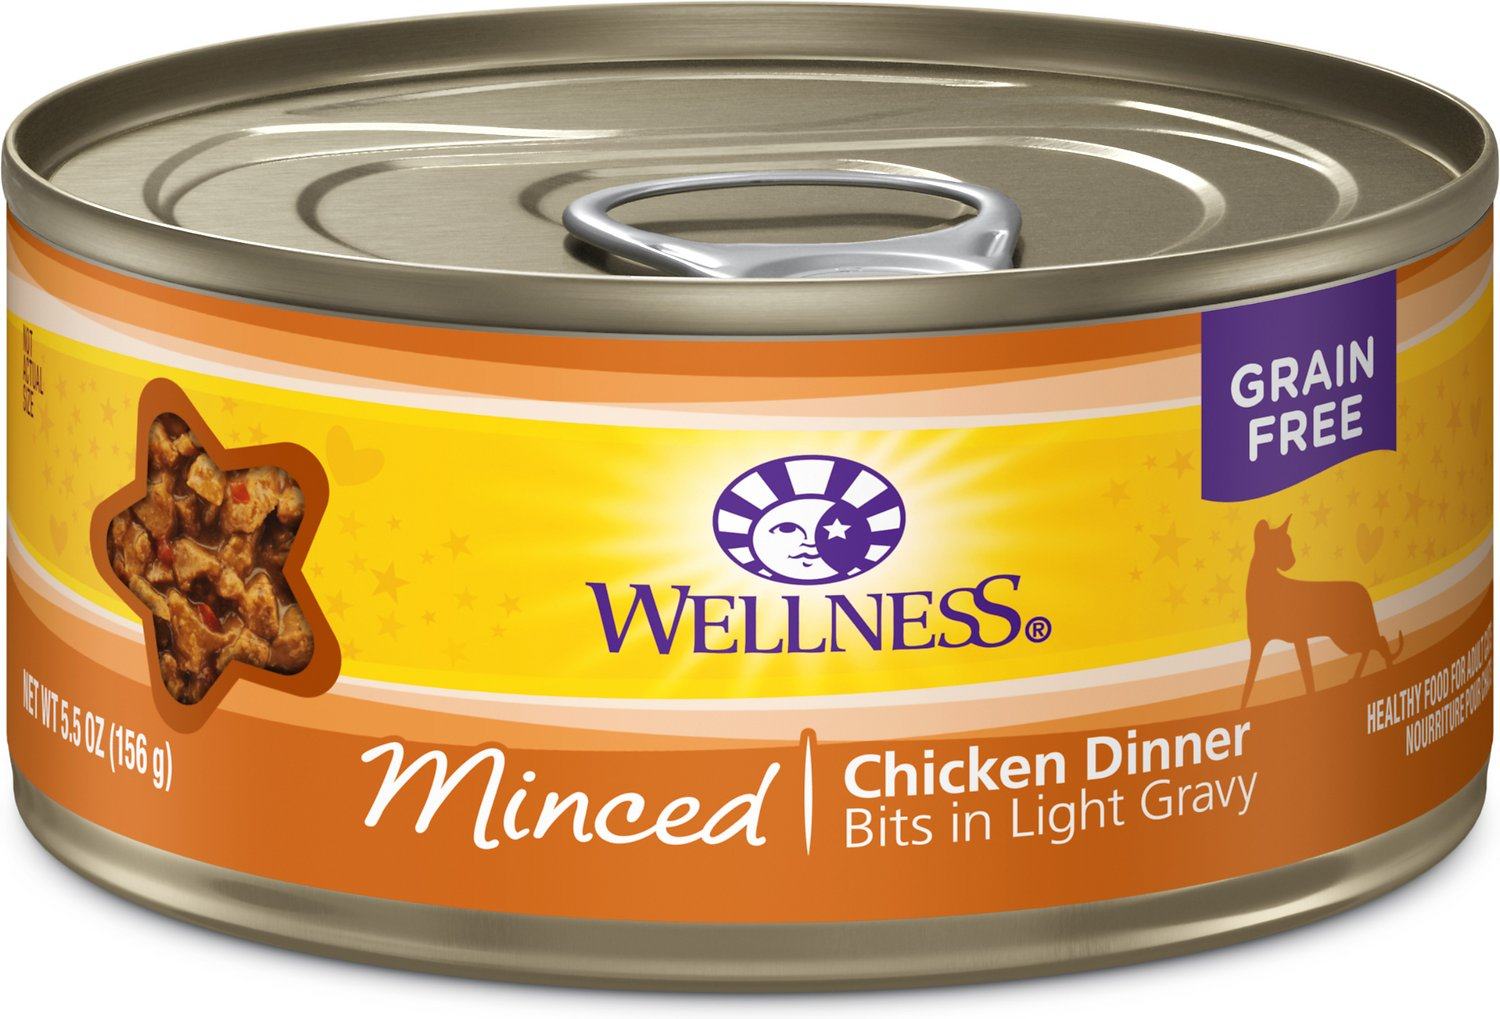 Wellness Minced Chicken Dinner Grain-Free Canned Cat Food, 3-oz